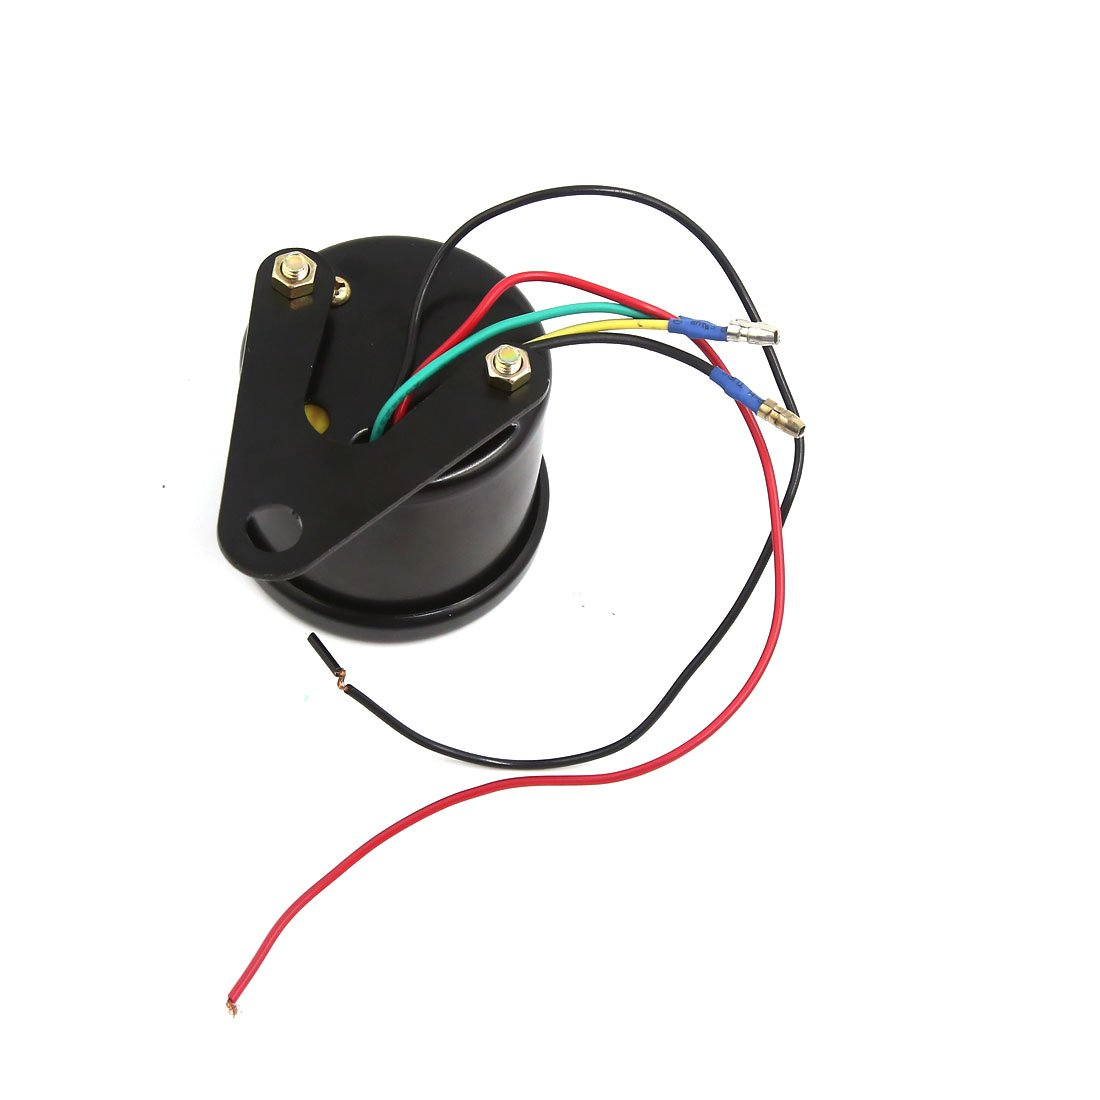 Uxcell a16073000ux1175 Motorcycle Tachometer Guage